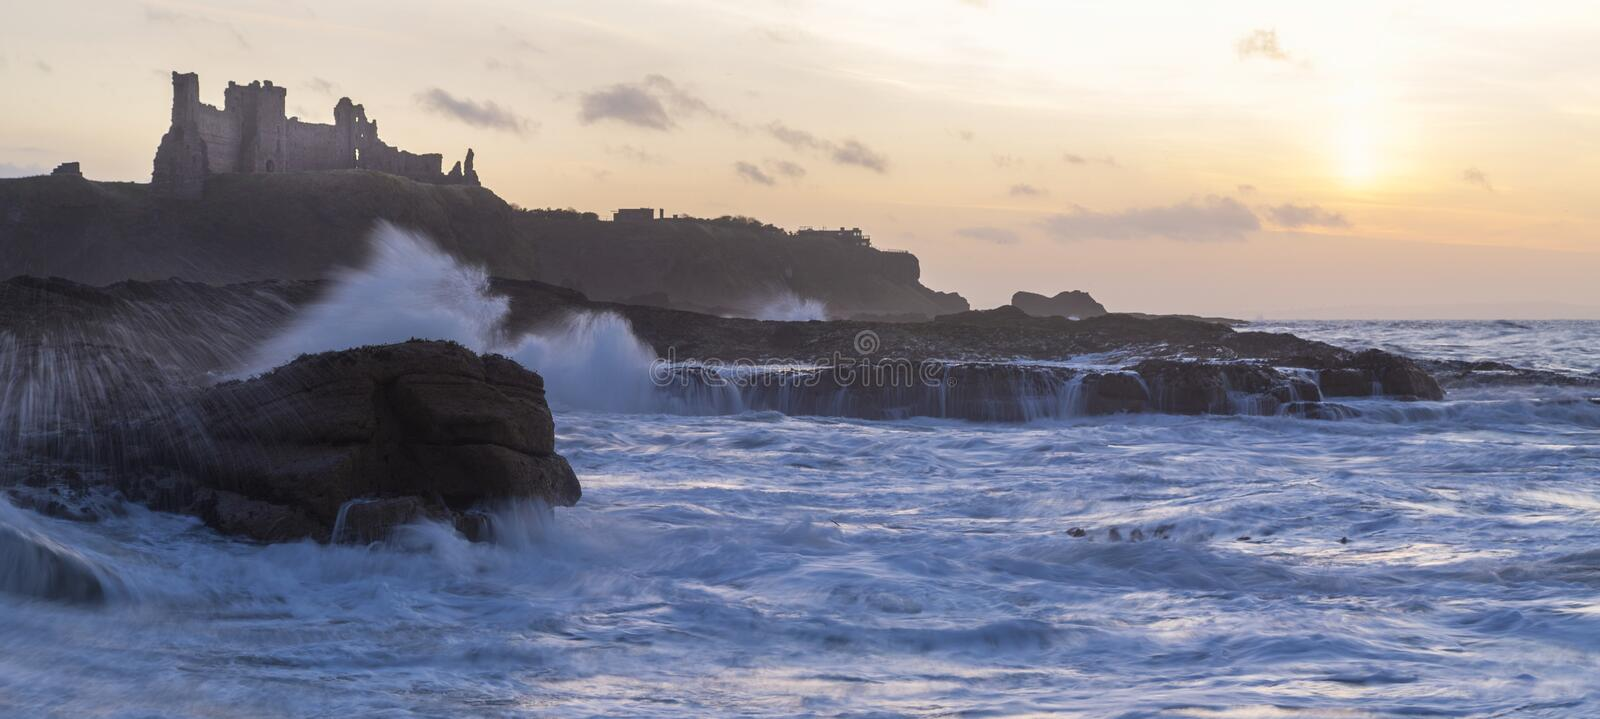 Golden hour, tantallon castle with rough seas. Golden hour, Tantallon castle in Scotland with rough seas at sunset royalty free stock photo